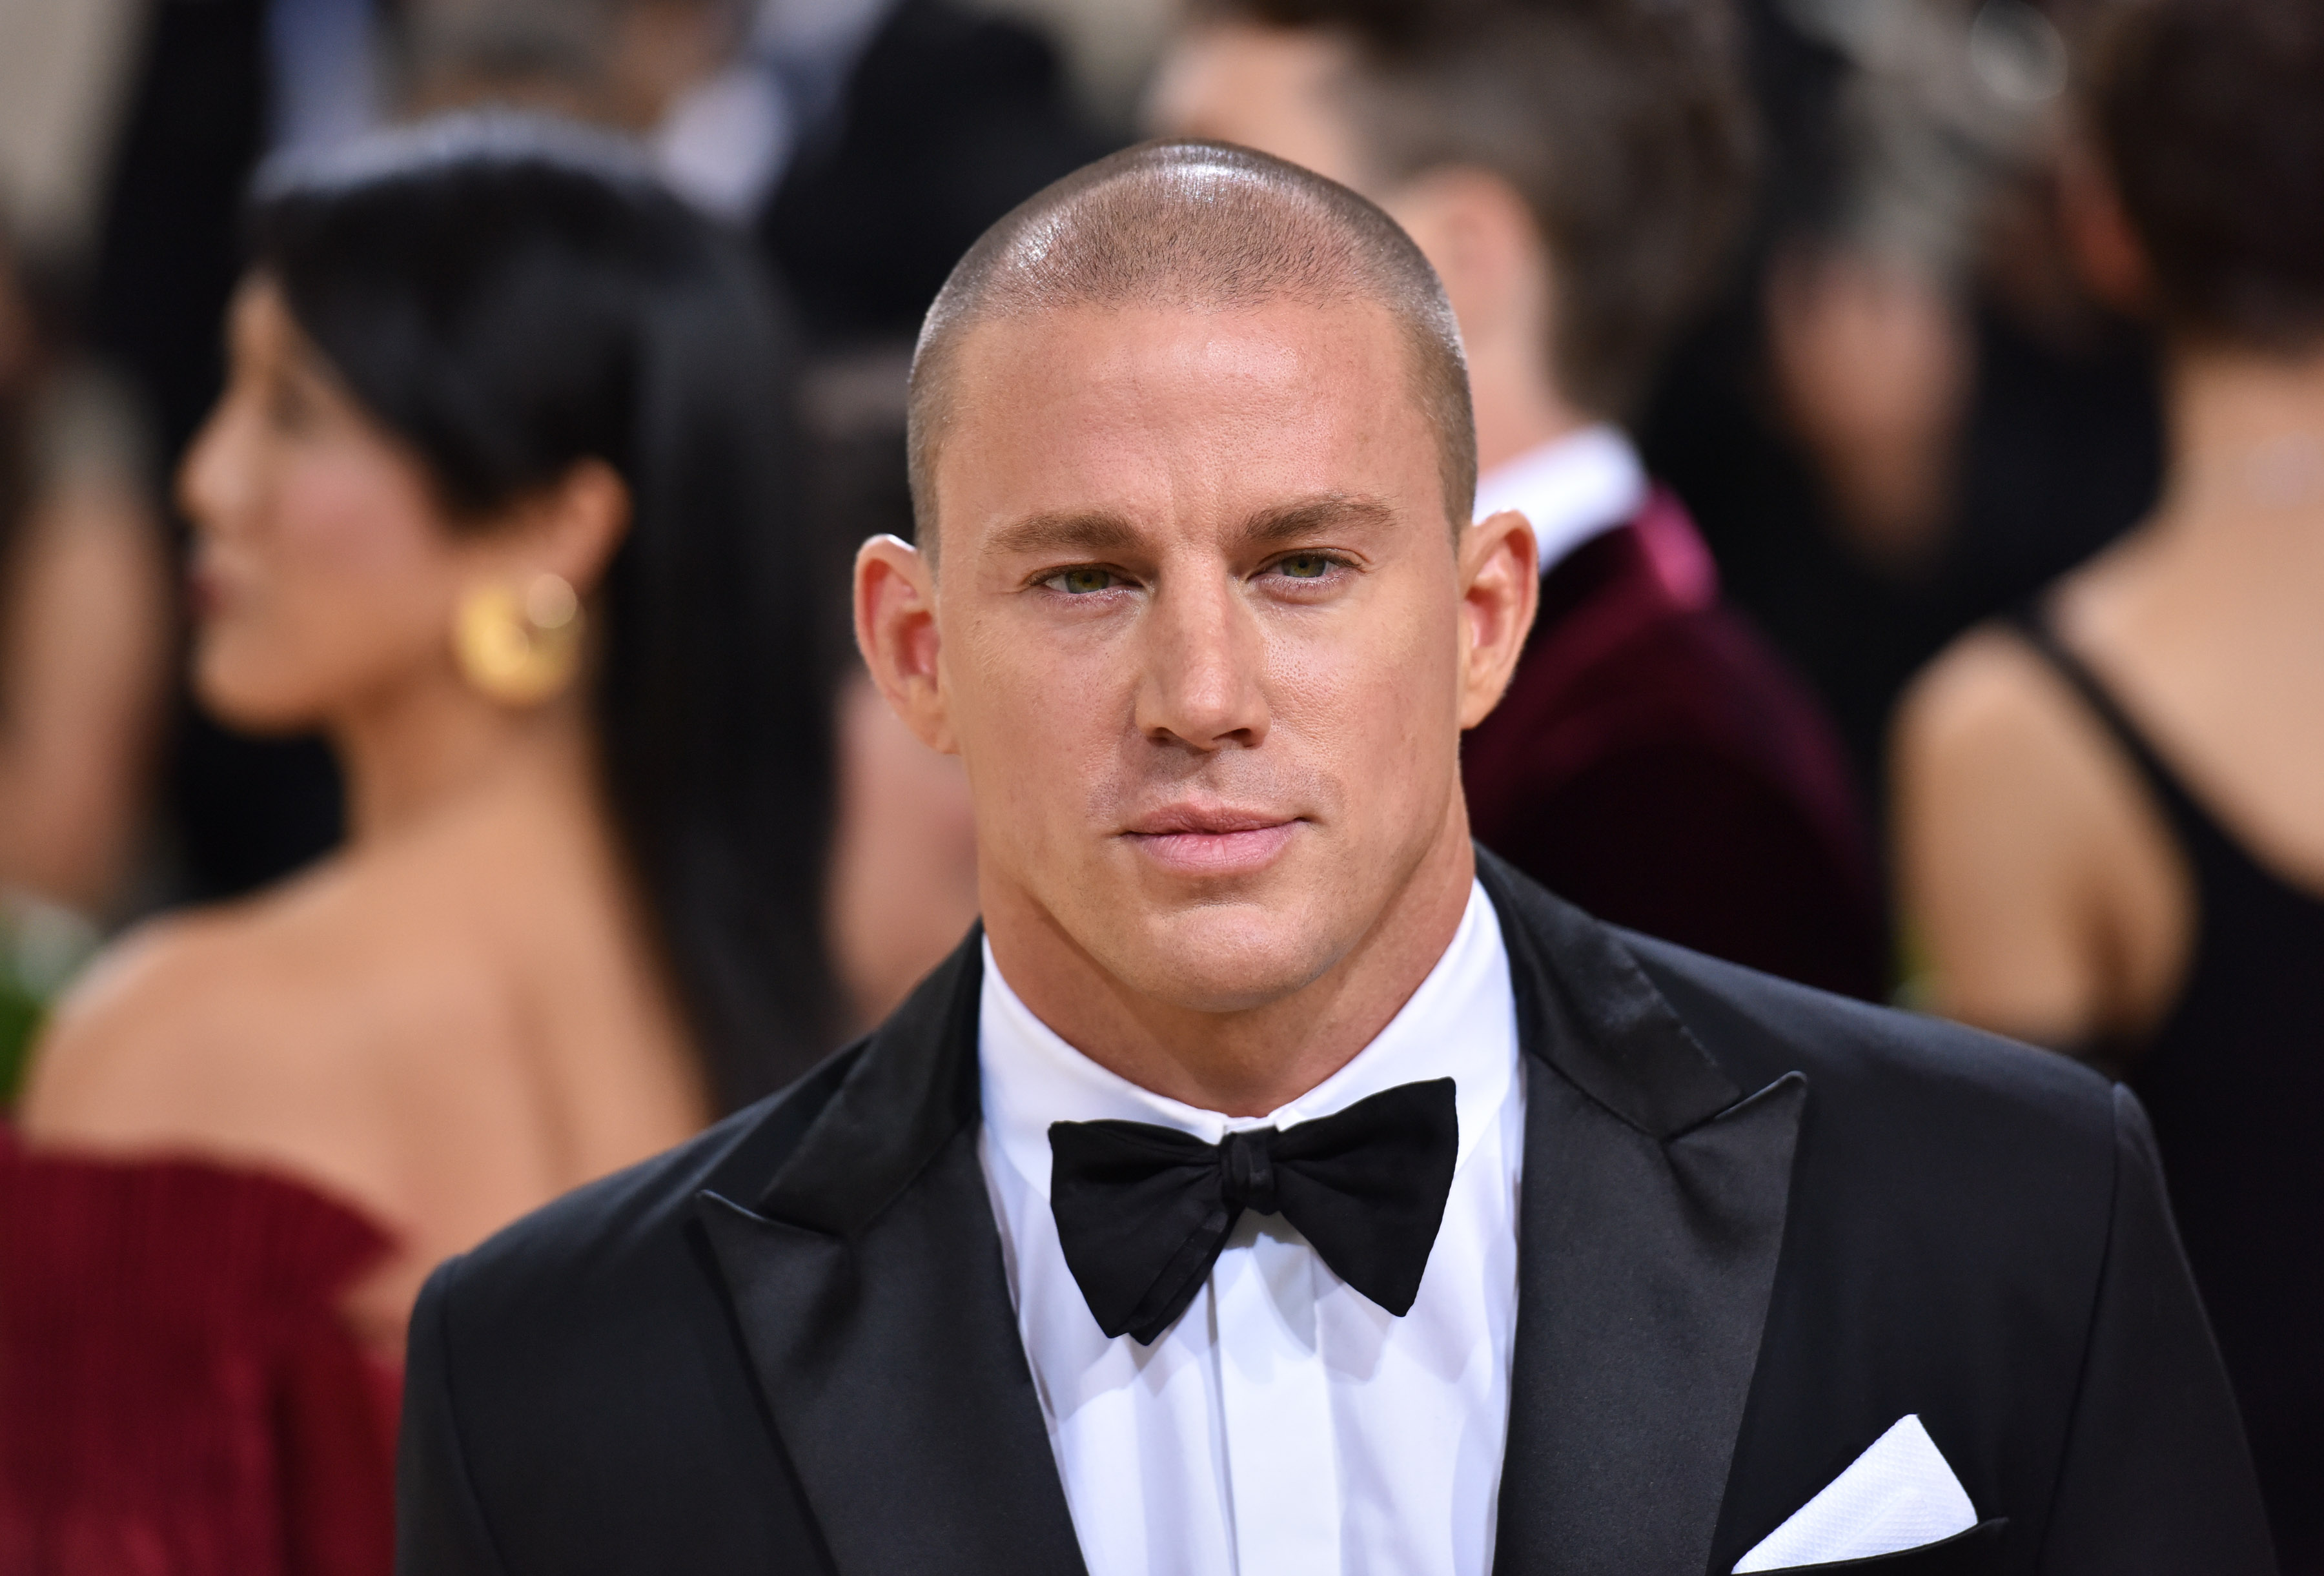 Channing Tatum addresses Dave Chappelle controversy: 'I understand and hate that he has hurt so many people'